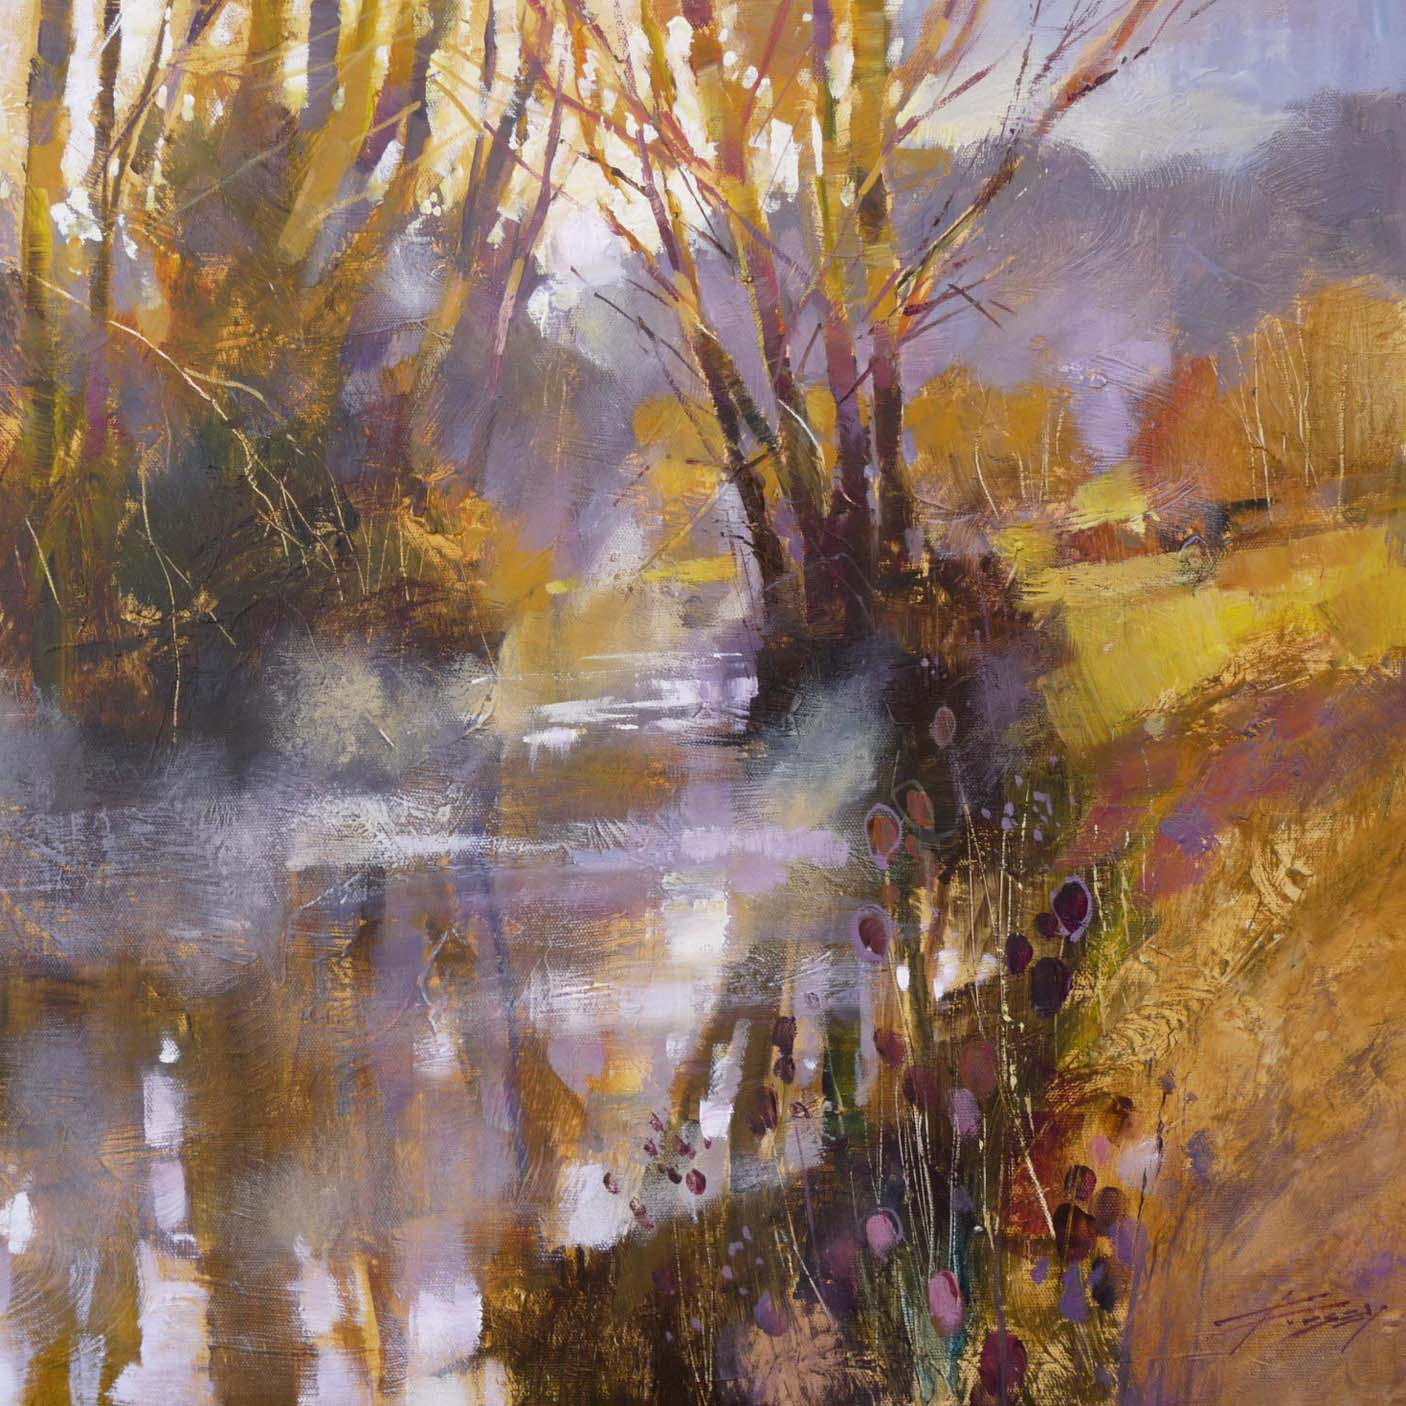 Sunlight and early mist, The Mole by Chris Forsey